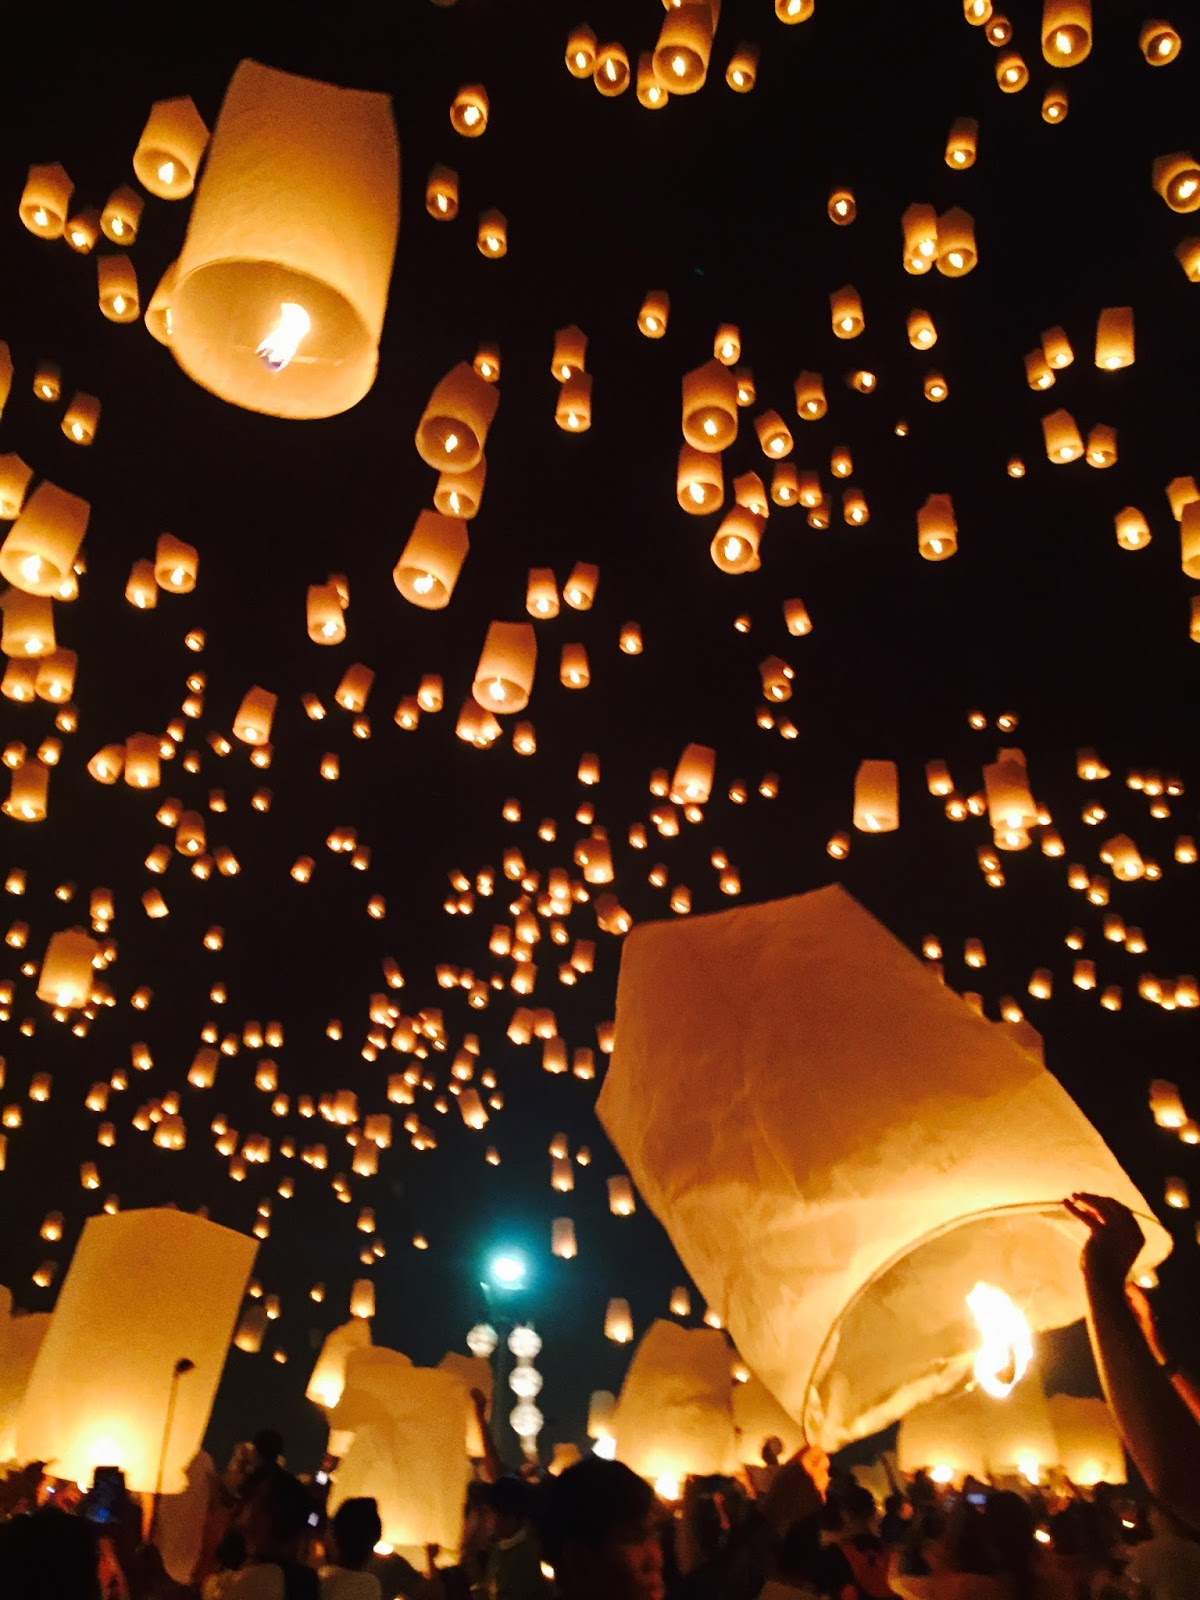 lantern festival_The Complete Guide to The Yee Peng Lantern Festival in Chiang Mai, Thailand | Helene ...